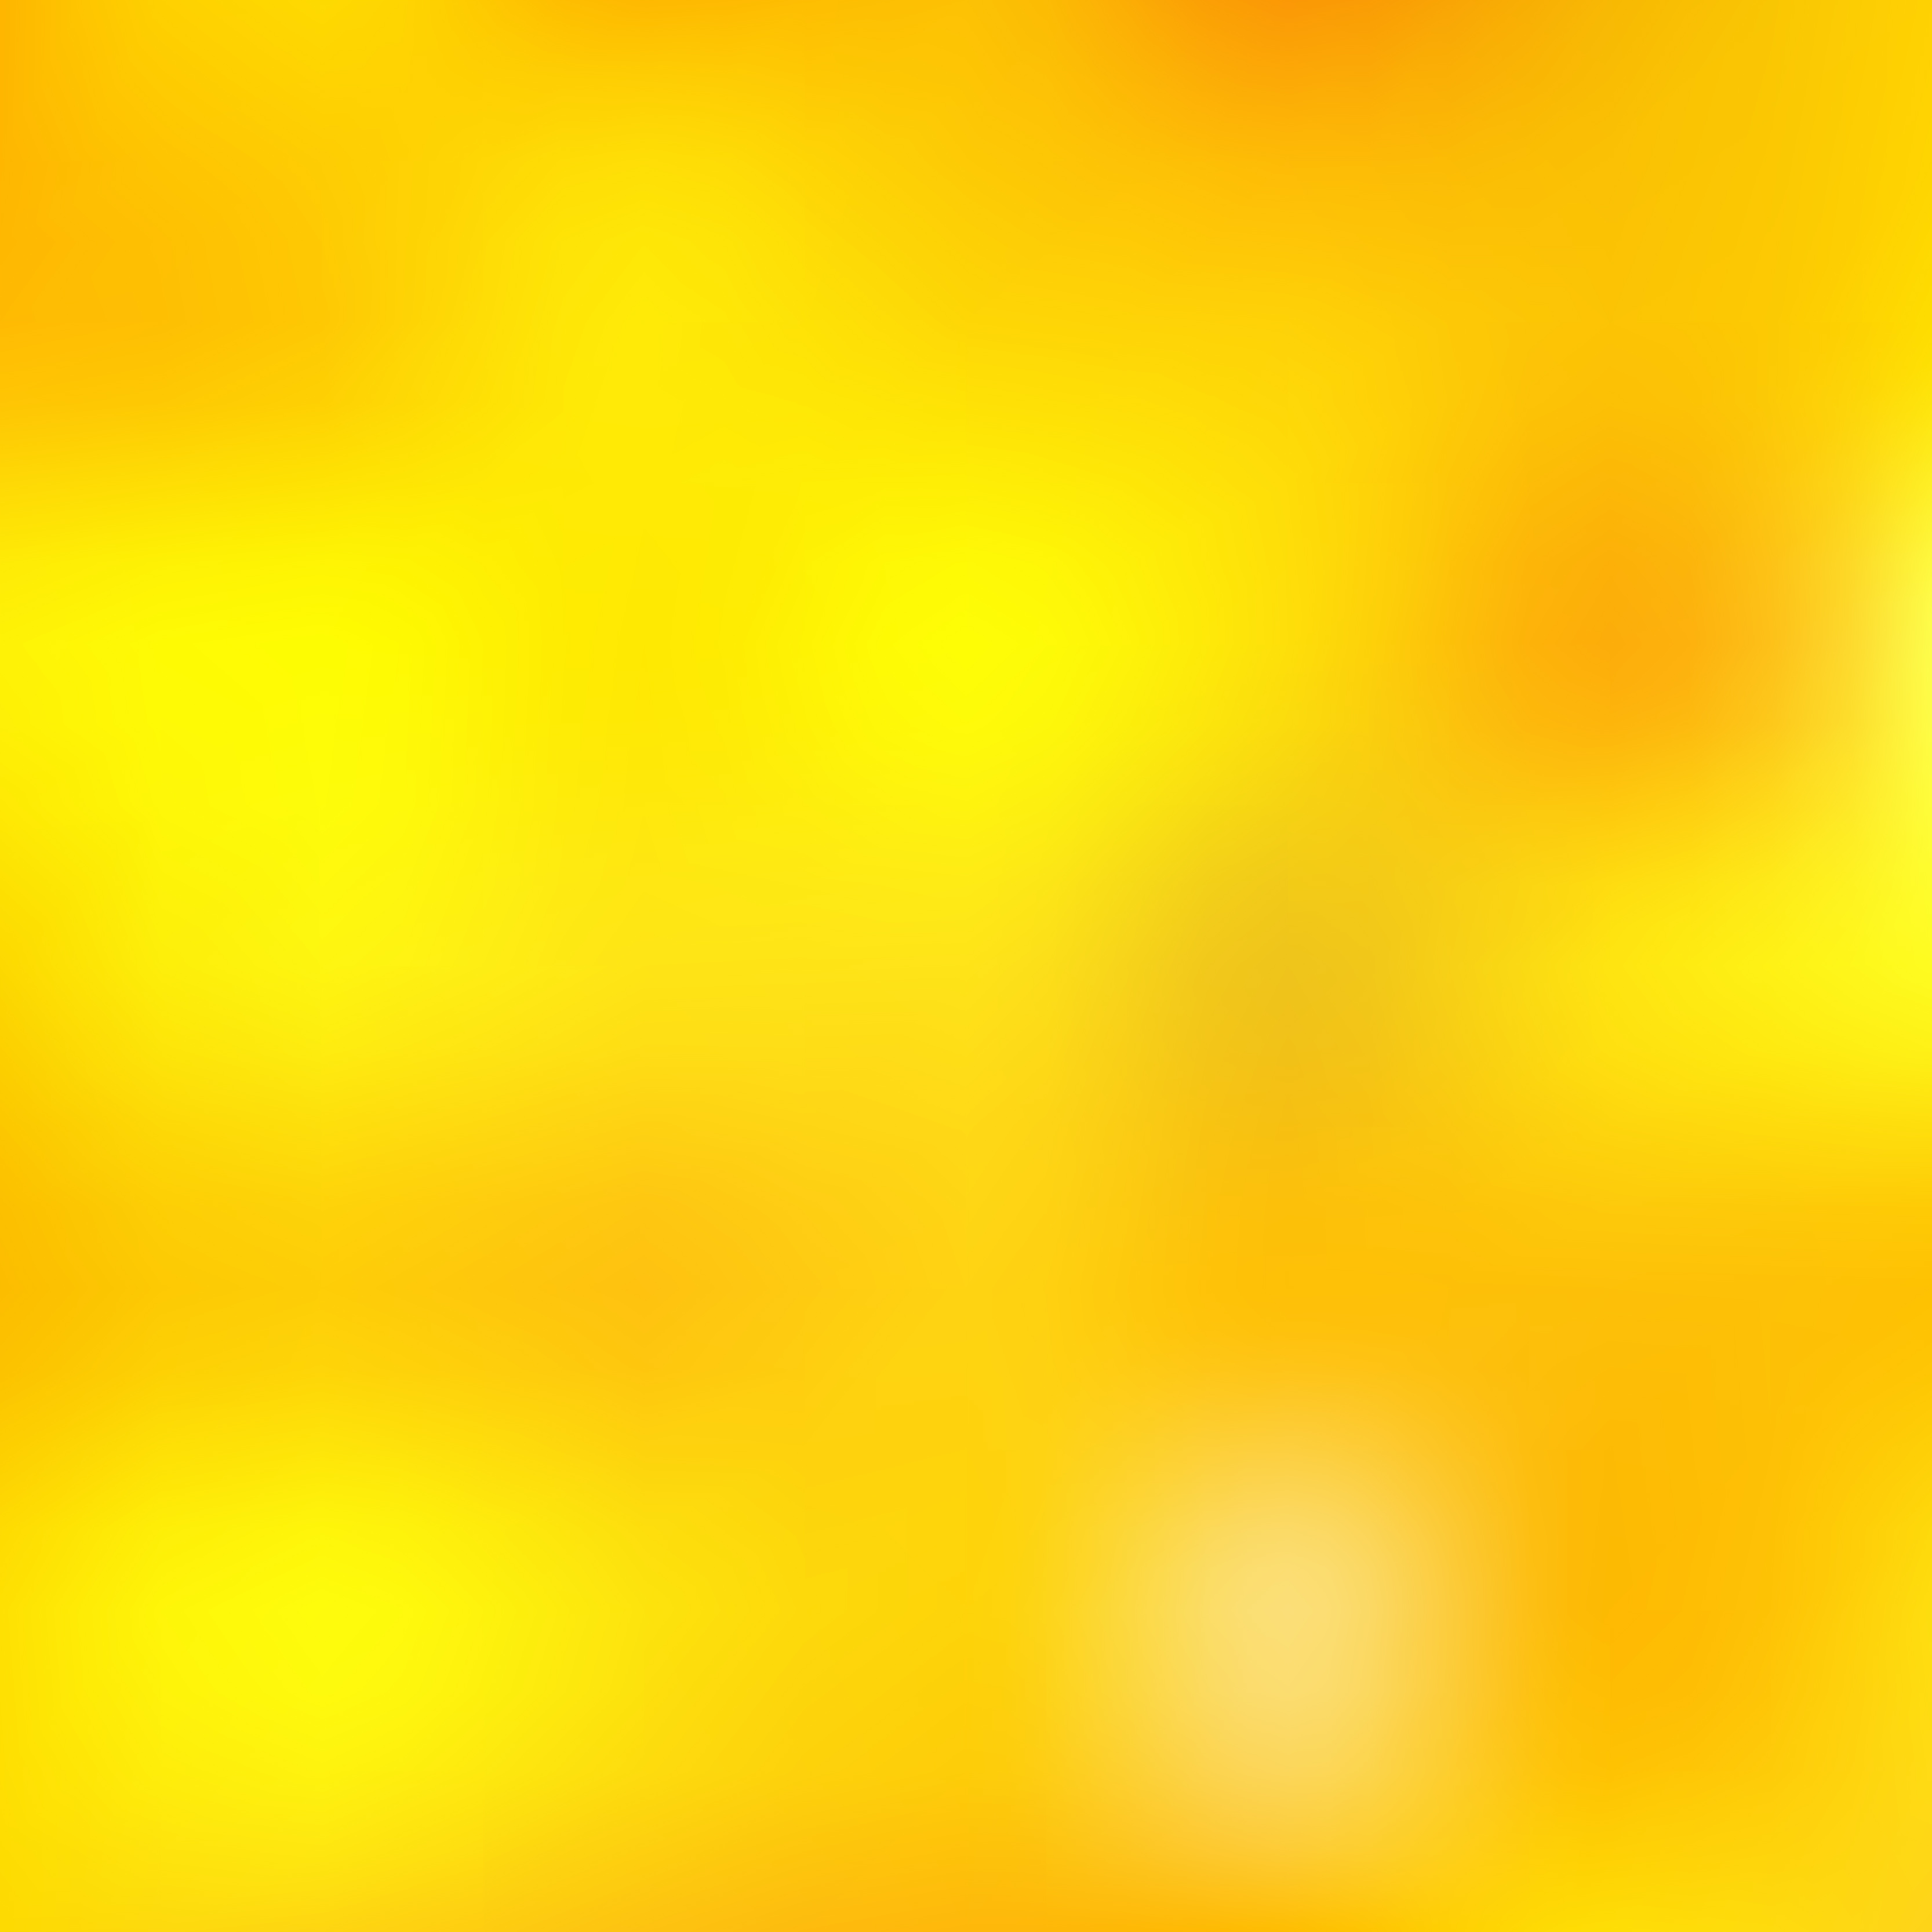 Free Yellow Simple Background Vector